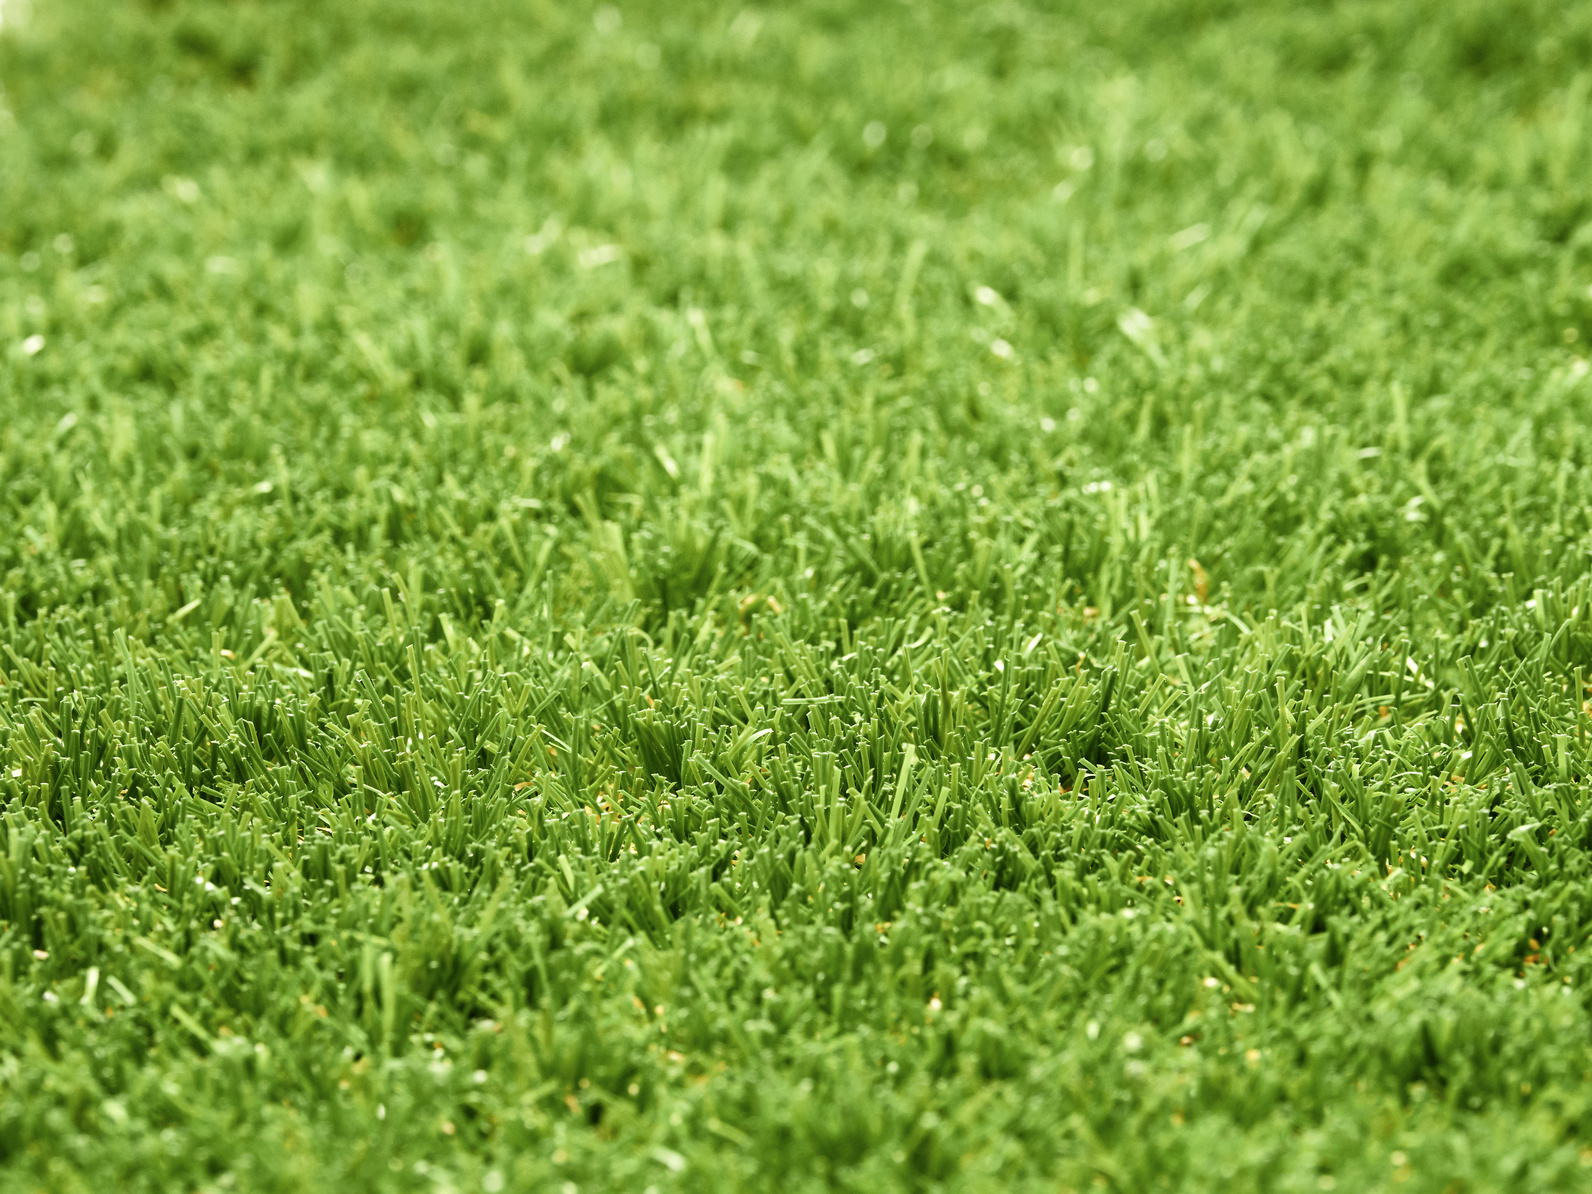 Recents post multiturf sport the advantages and disadvantages of a diy artificial lawn at home solutioingenieria Image collections